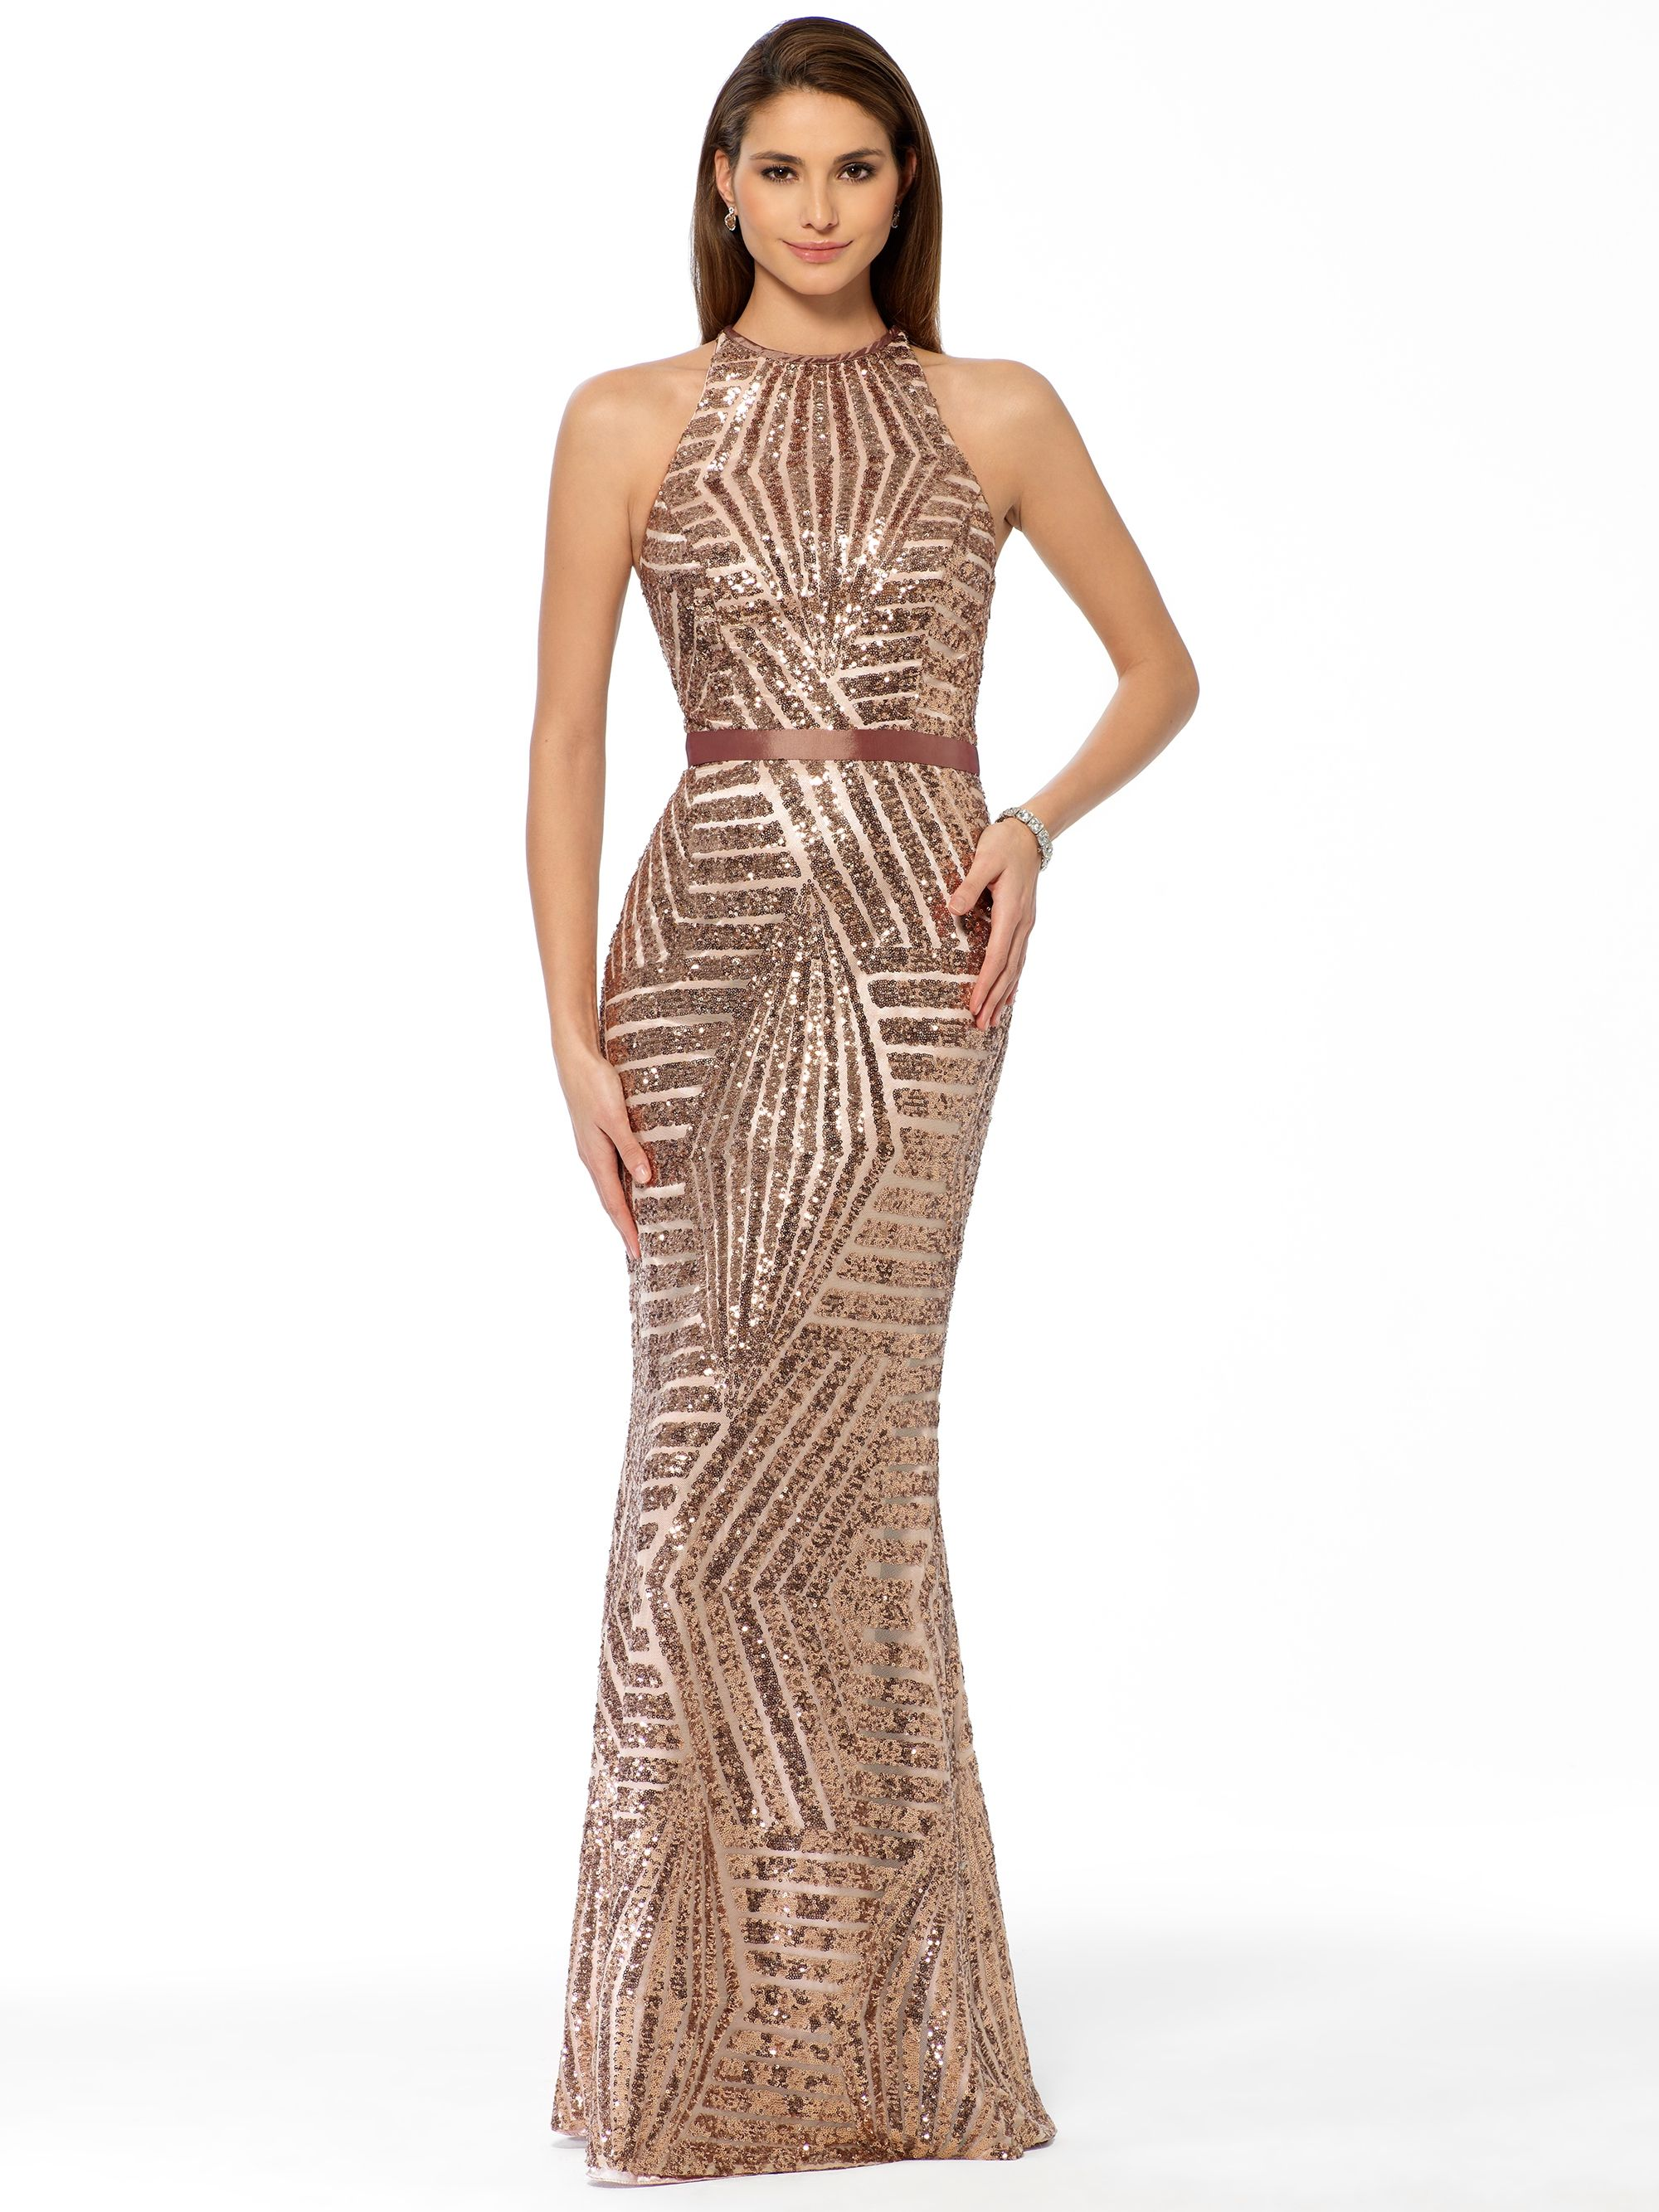 EVENING DRESSES | Champagne Geometric Sequin Gown | Caché | Jenny ...